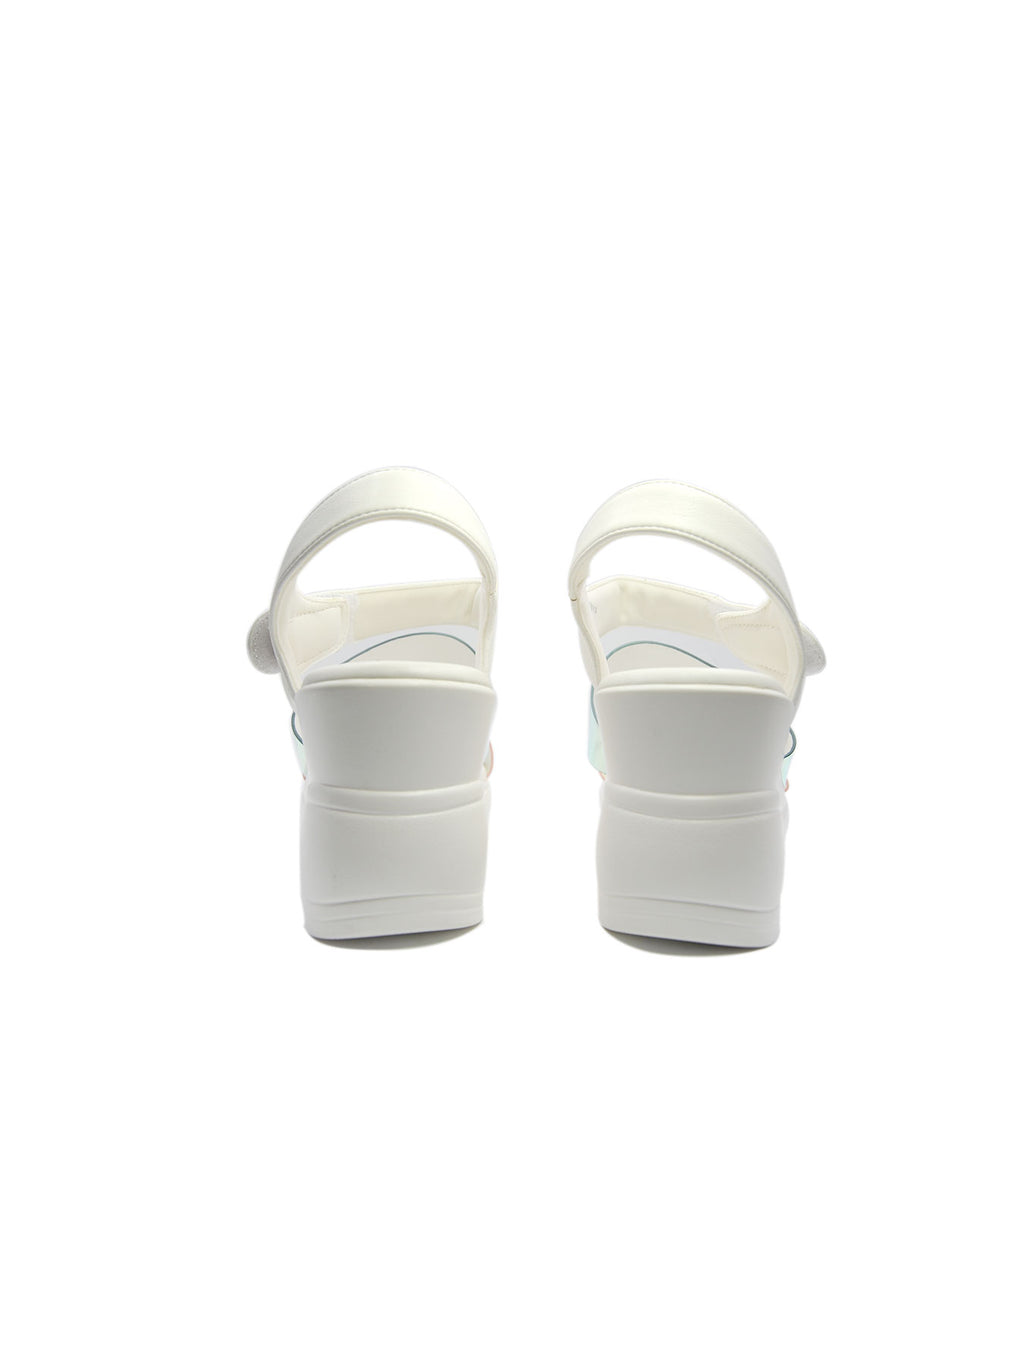 Larrie White Stylish Fashionable Wedges Sandals